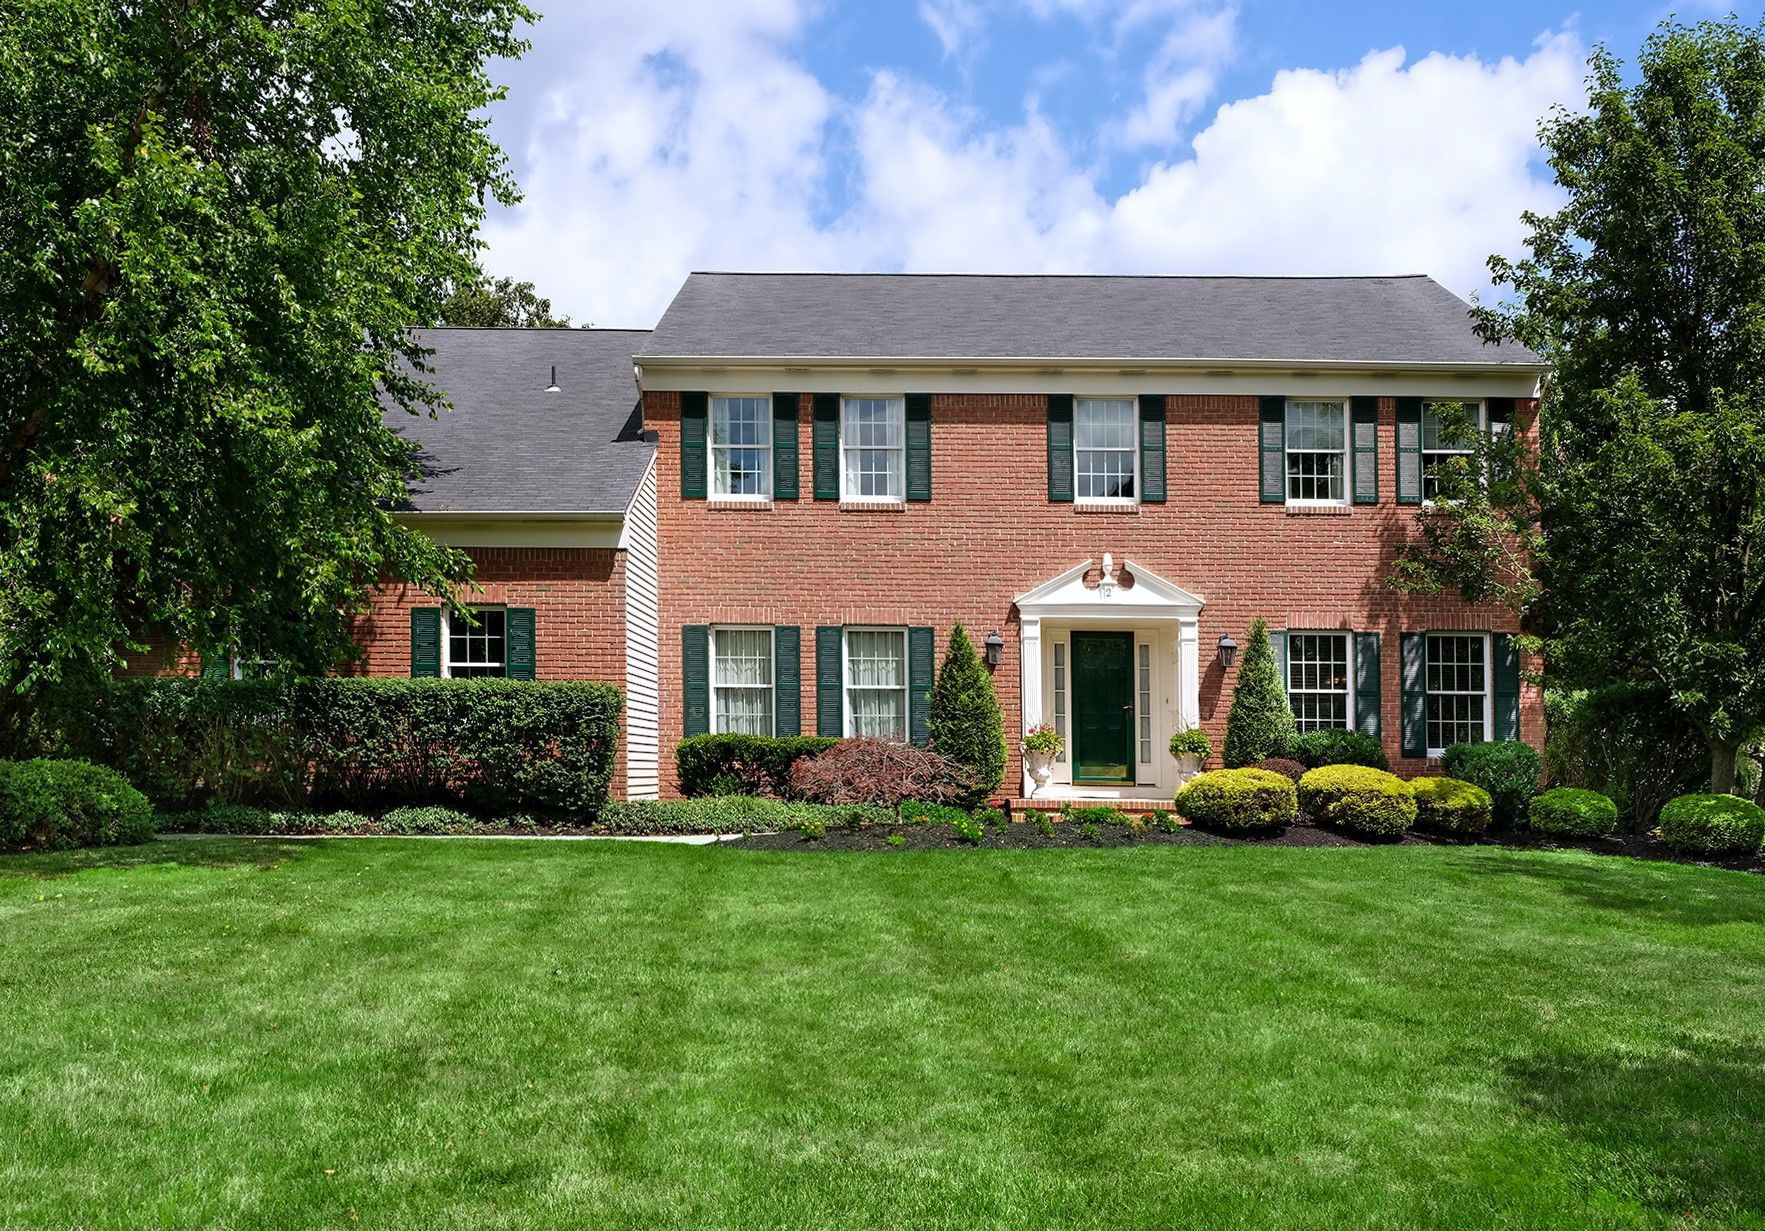 Single Family Homes for Sale at Princeton Oaks Perfection with Room for a Pool 2 Bush Court, West Windsor, New Jersey 08550 United States